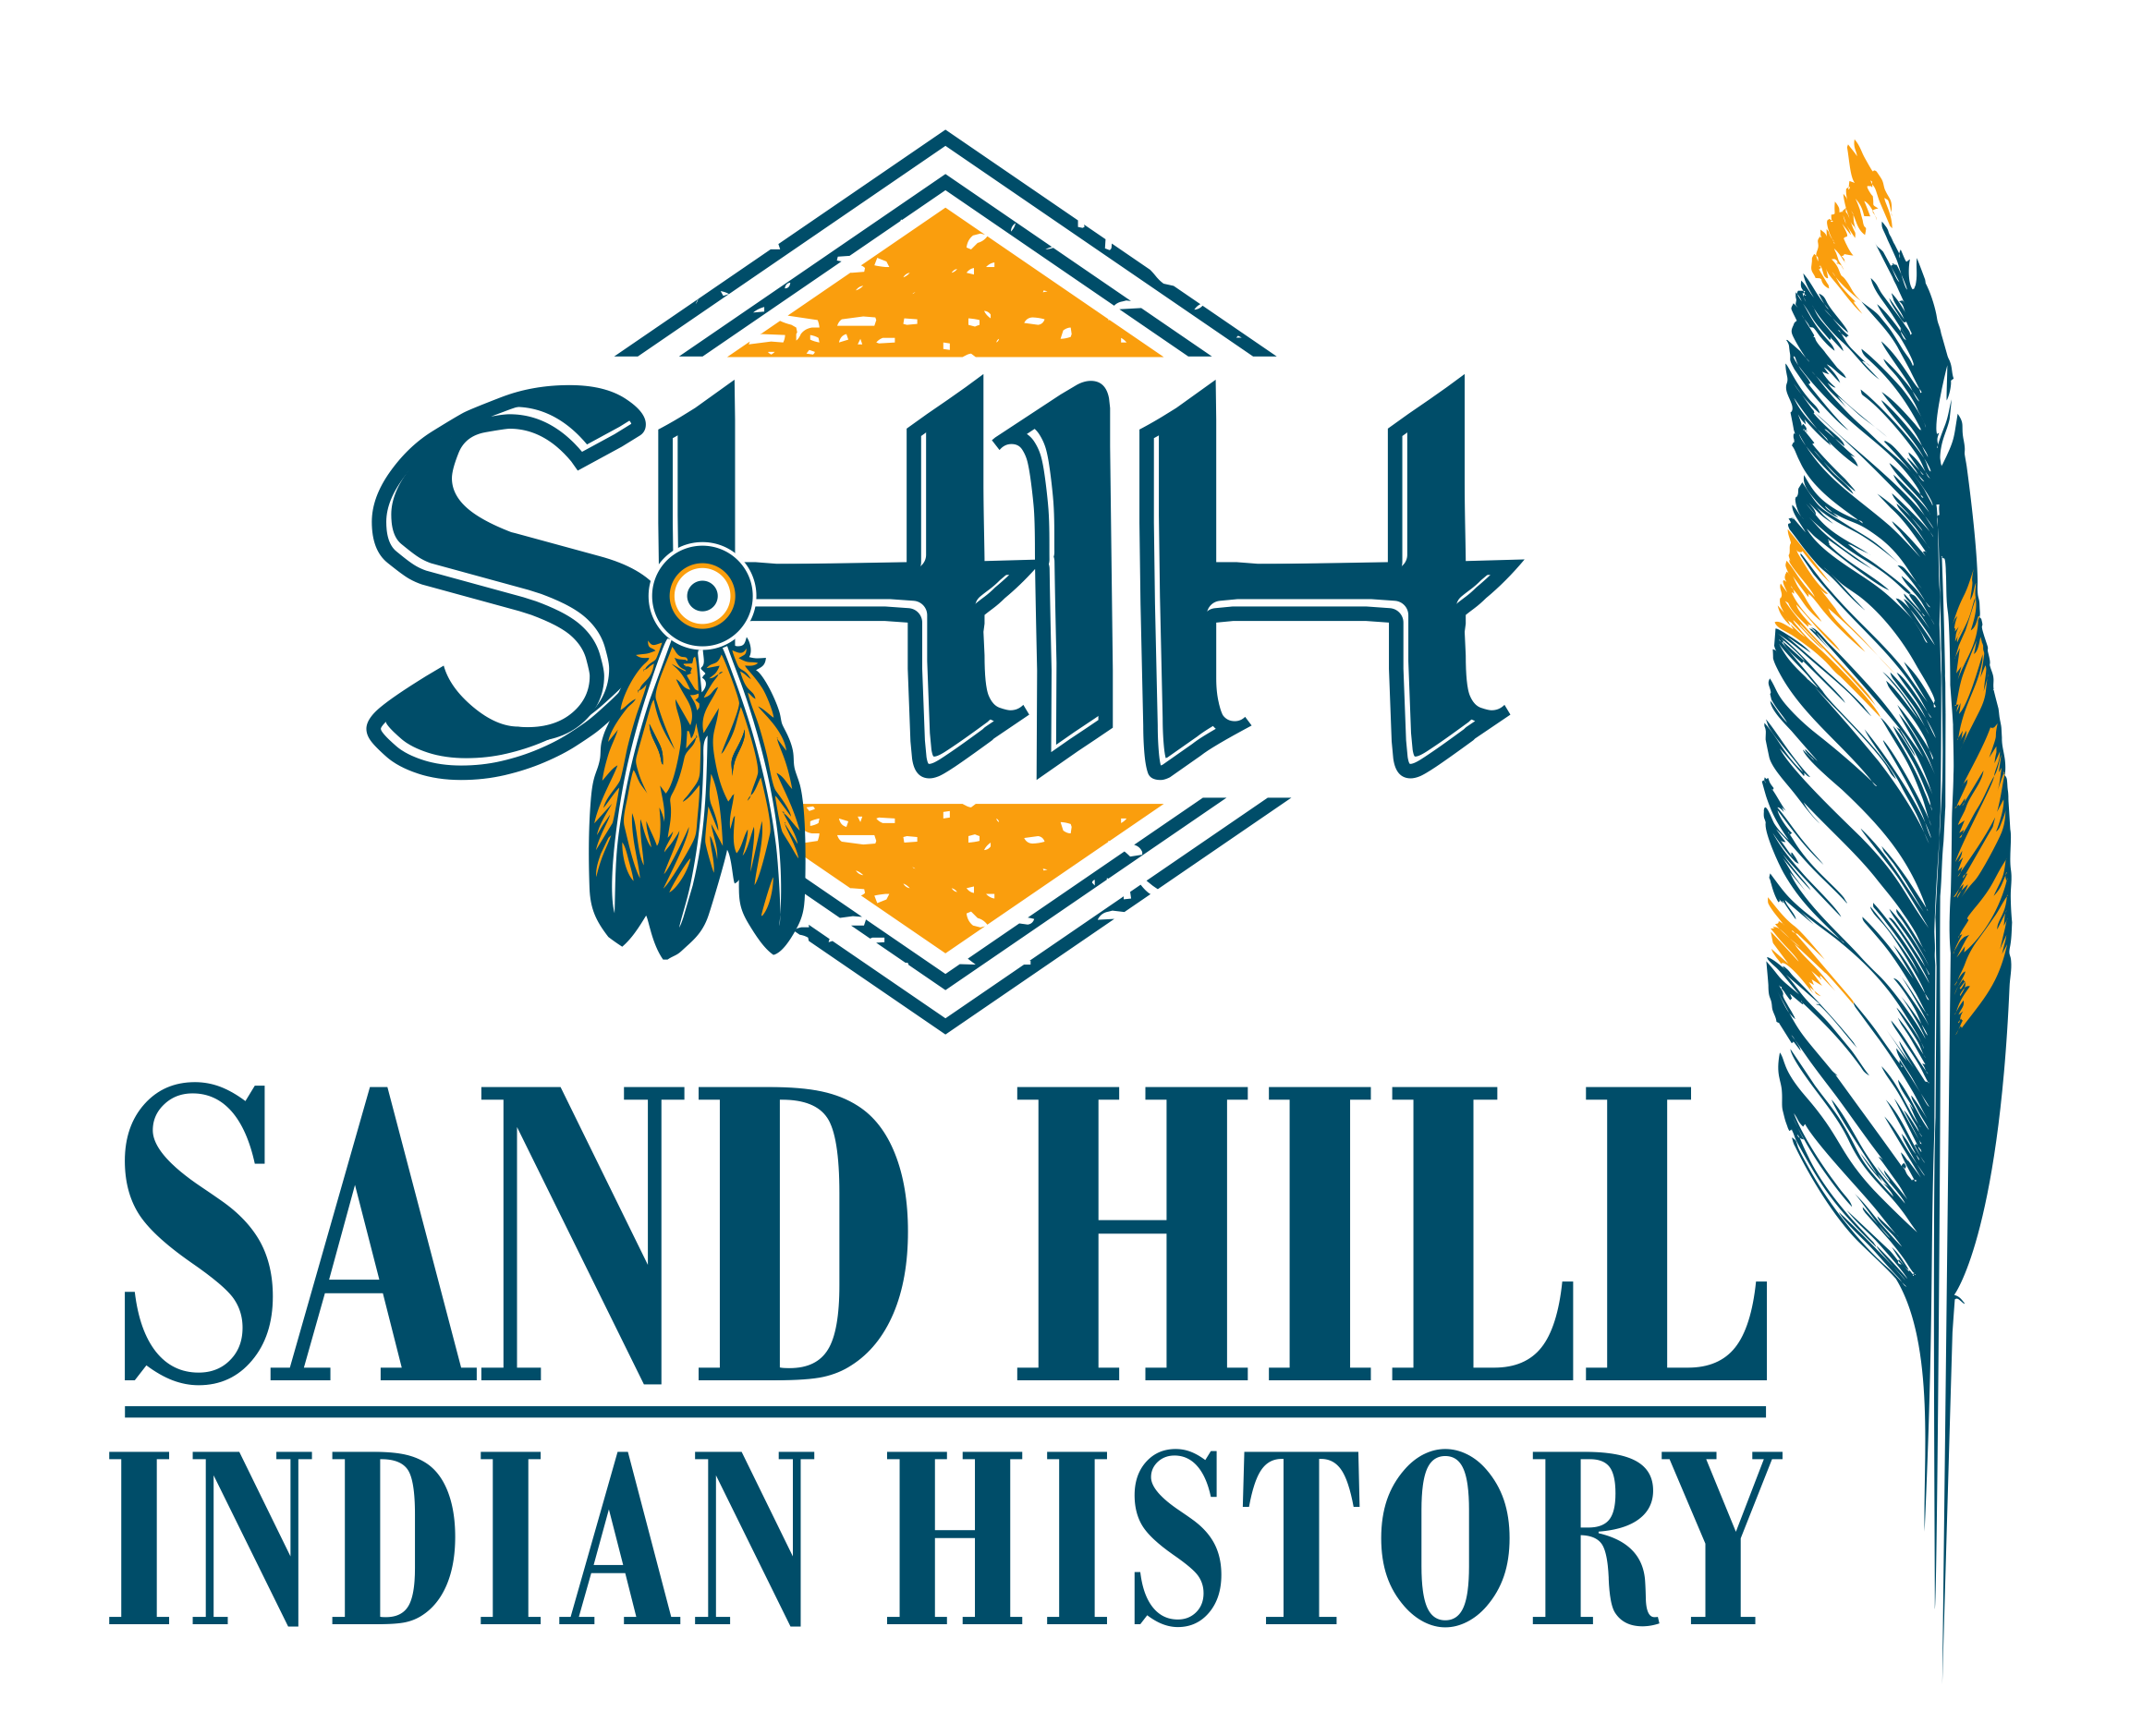 Sand Hill Indian History